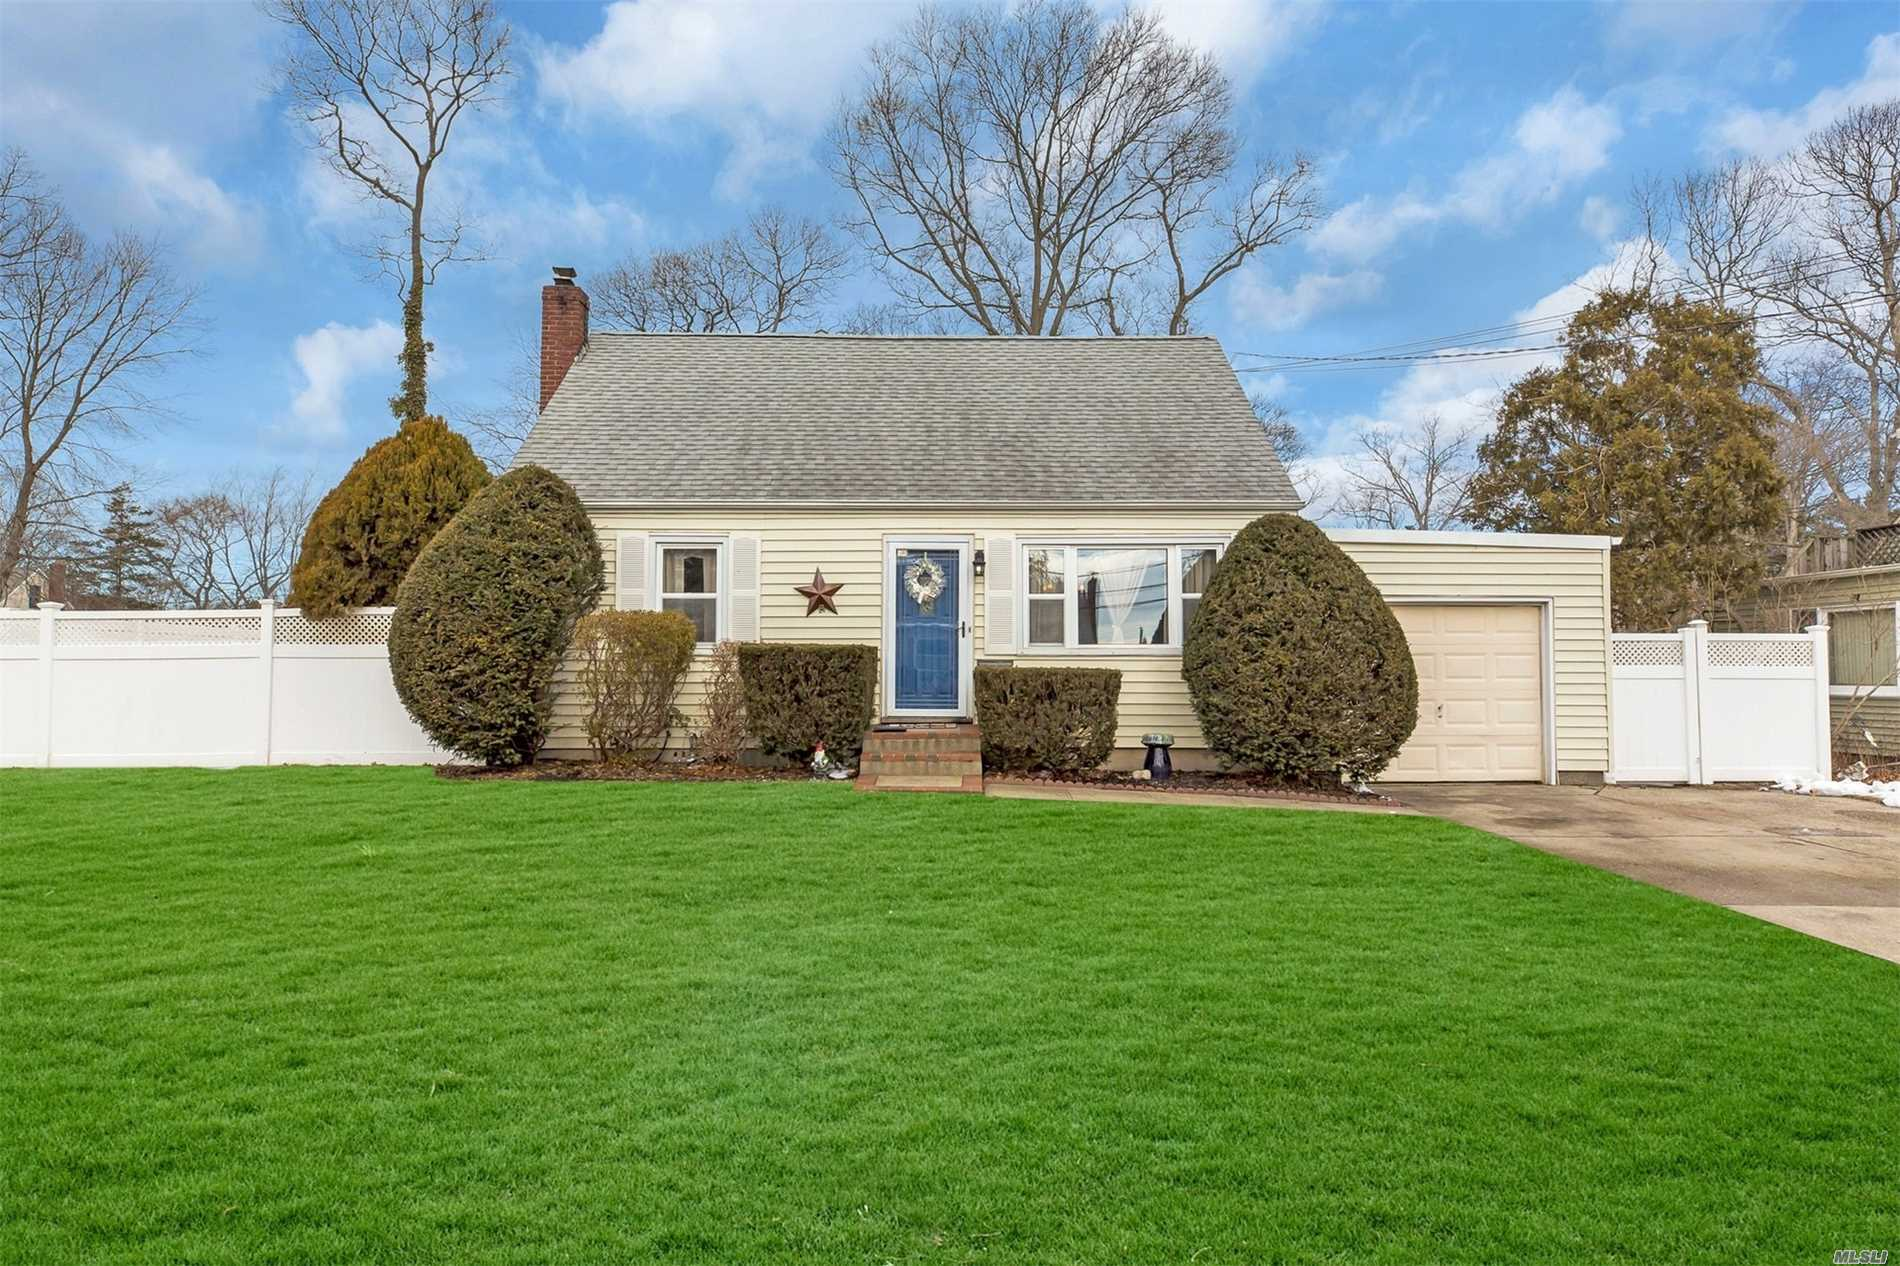 Storybook Cape In Sayville School District.Open Floor Plan, Newly Renovated Custom Kitchen With Ss Appliances And Granite Counters, New Bath , Updated Roof, Heating & Windows. Walk To Elementary School Low Low Taxes